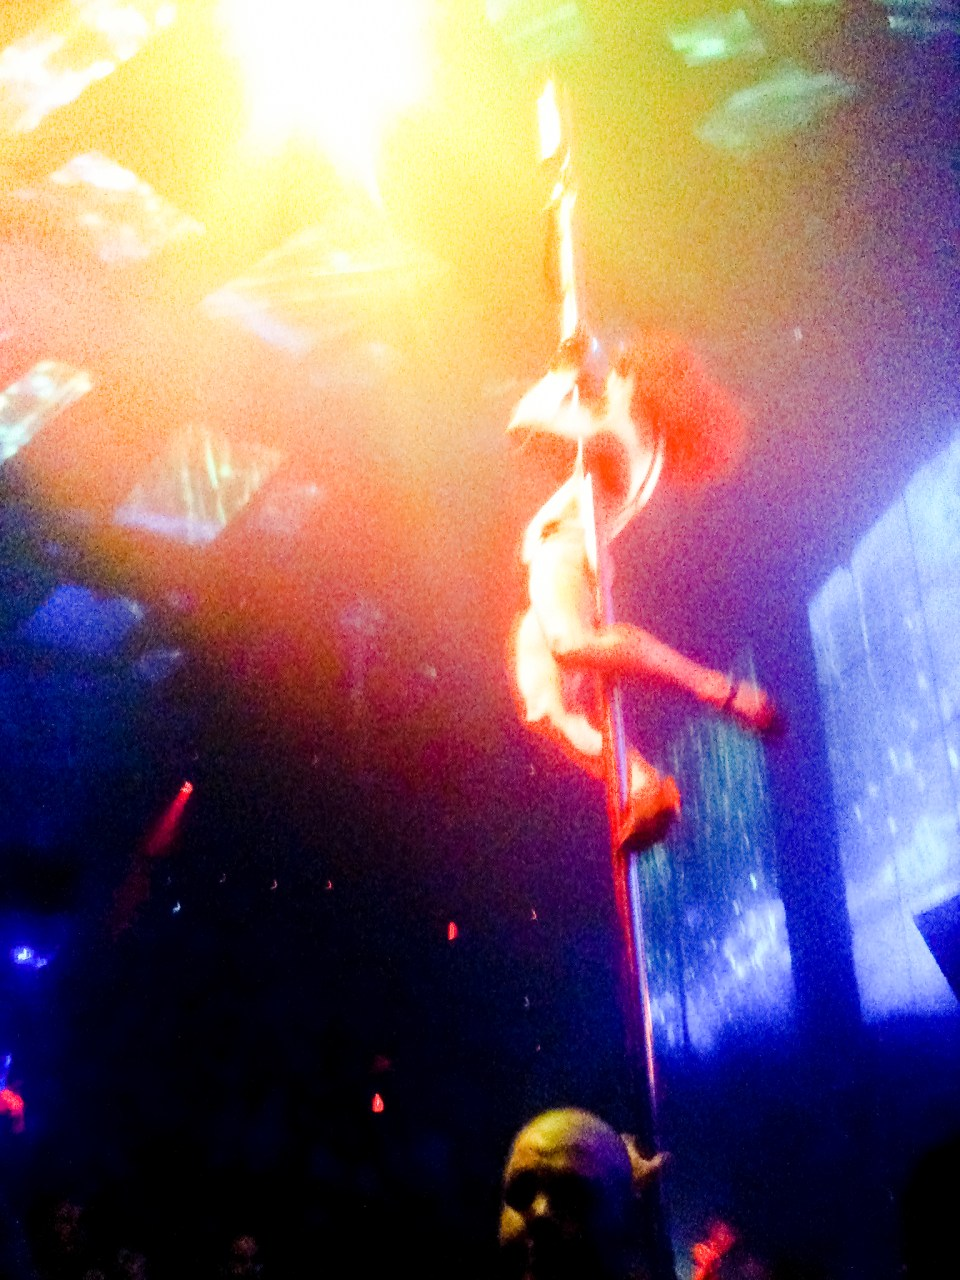 Cirque Du Soleil acrobats above the dancefloor of Light nightclub in Las Vegas.